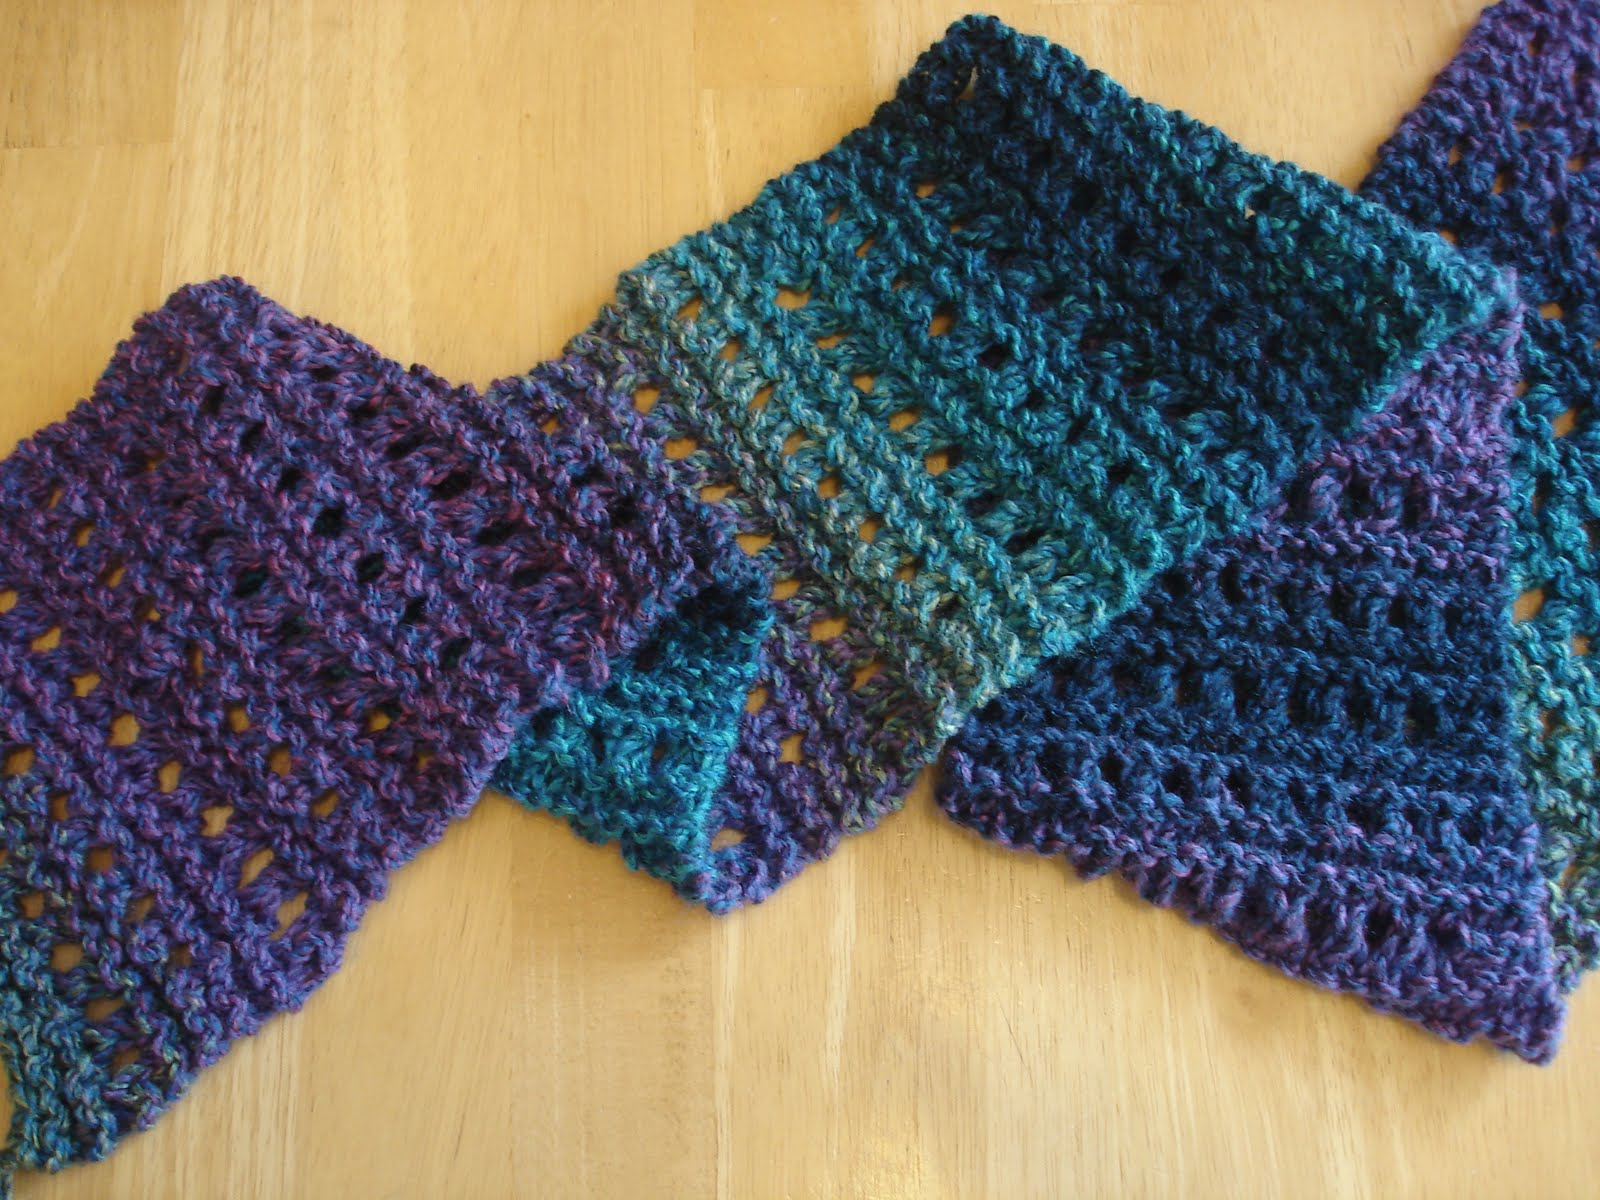 Simple Knitting Patterns : Fiber Flux: Free Knitting Pattern: Tweedy Eyelet Scarf!